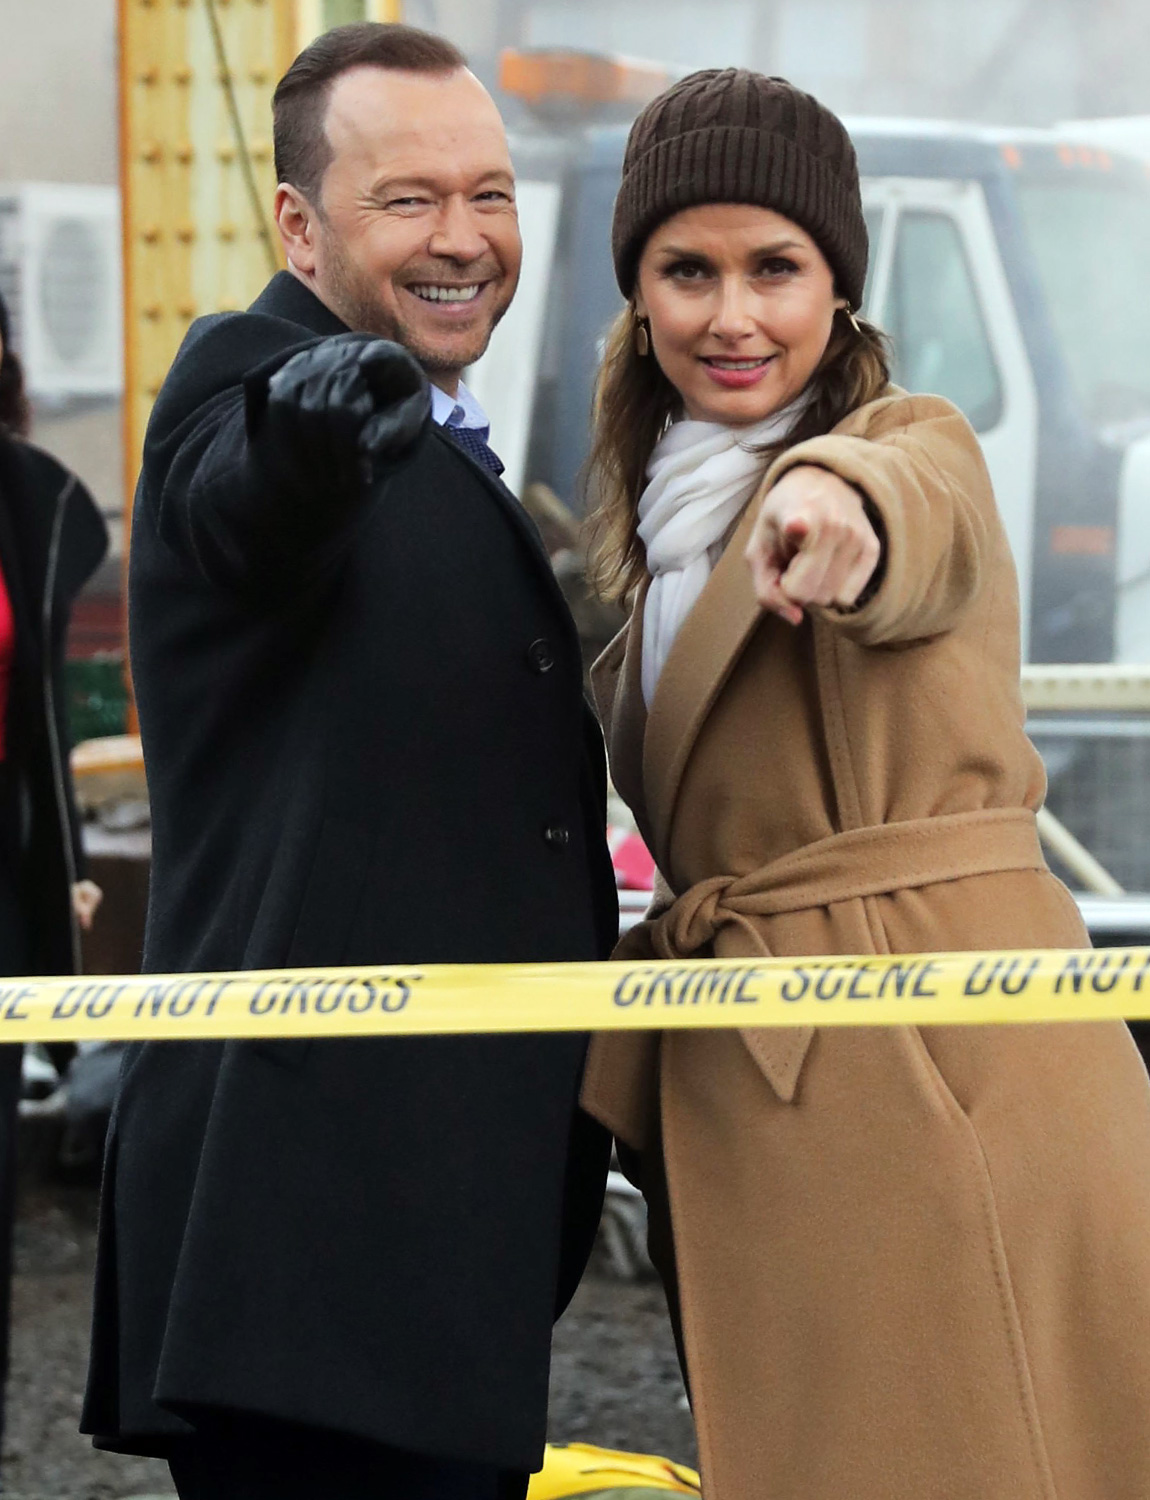 Donnie Wahlberg and Bridget Moynahan are seen on the set of 'Blue Bloods' on February 26, 2020 in New York City